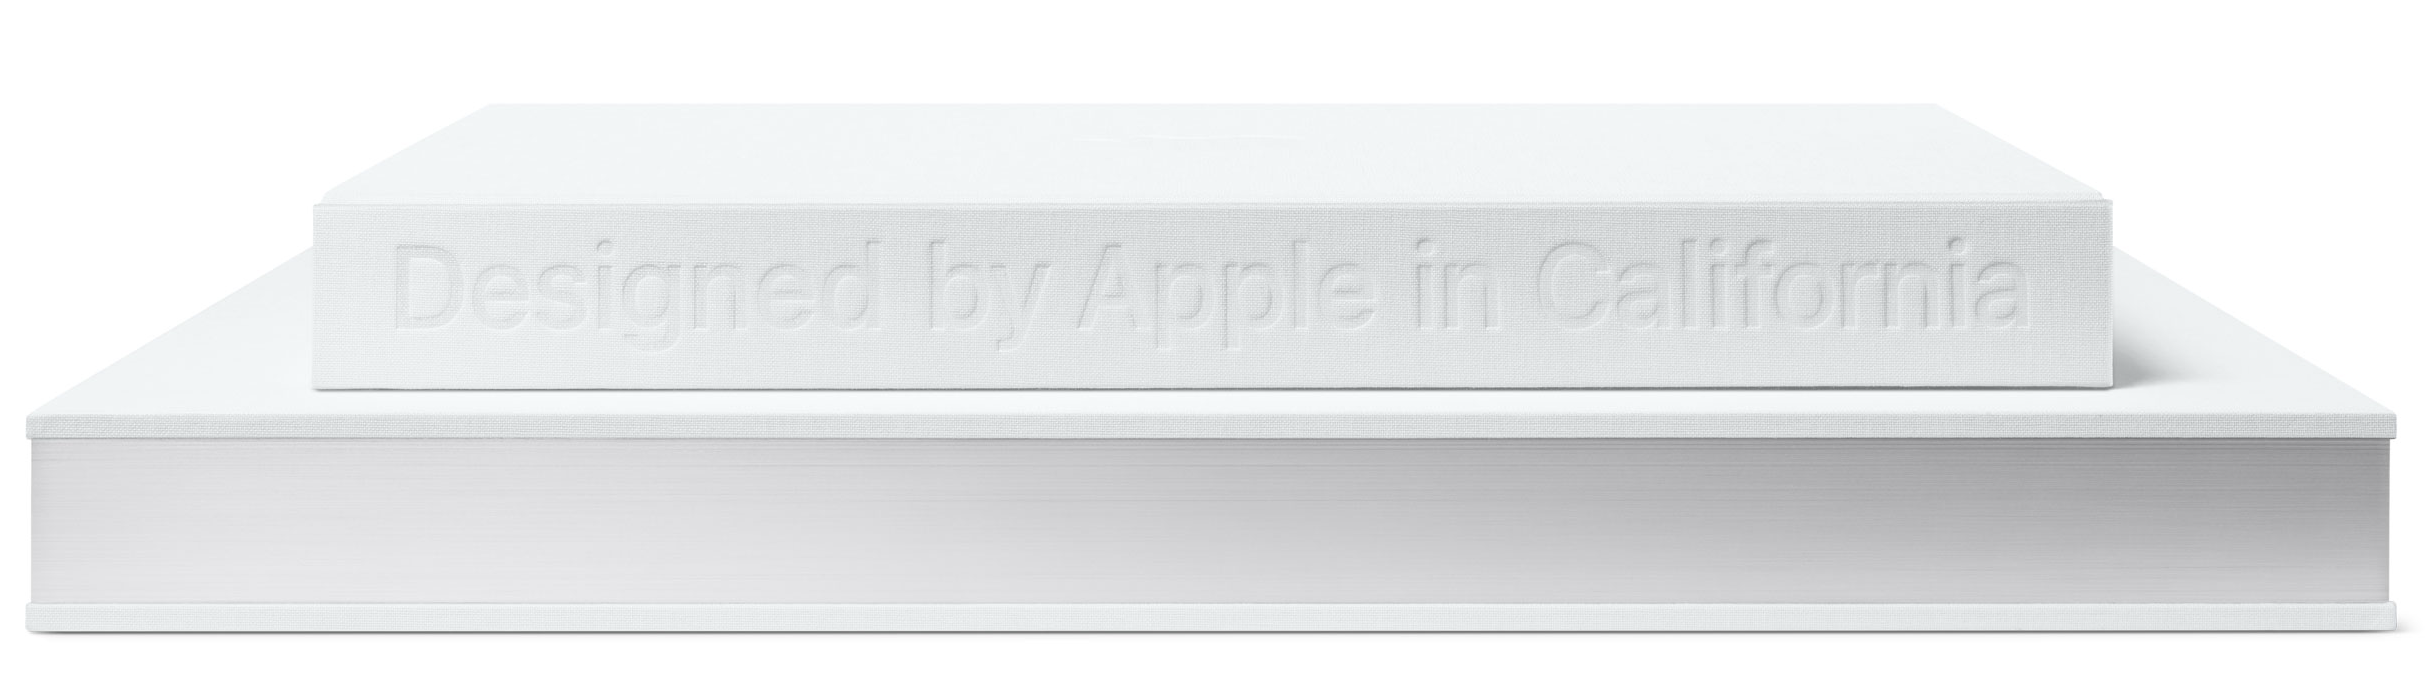 Designed by Apple California